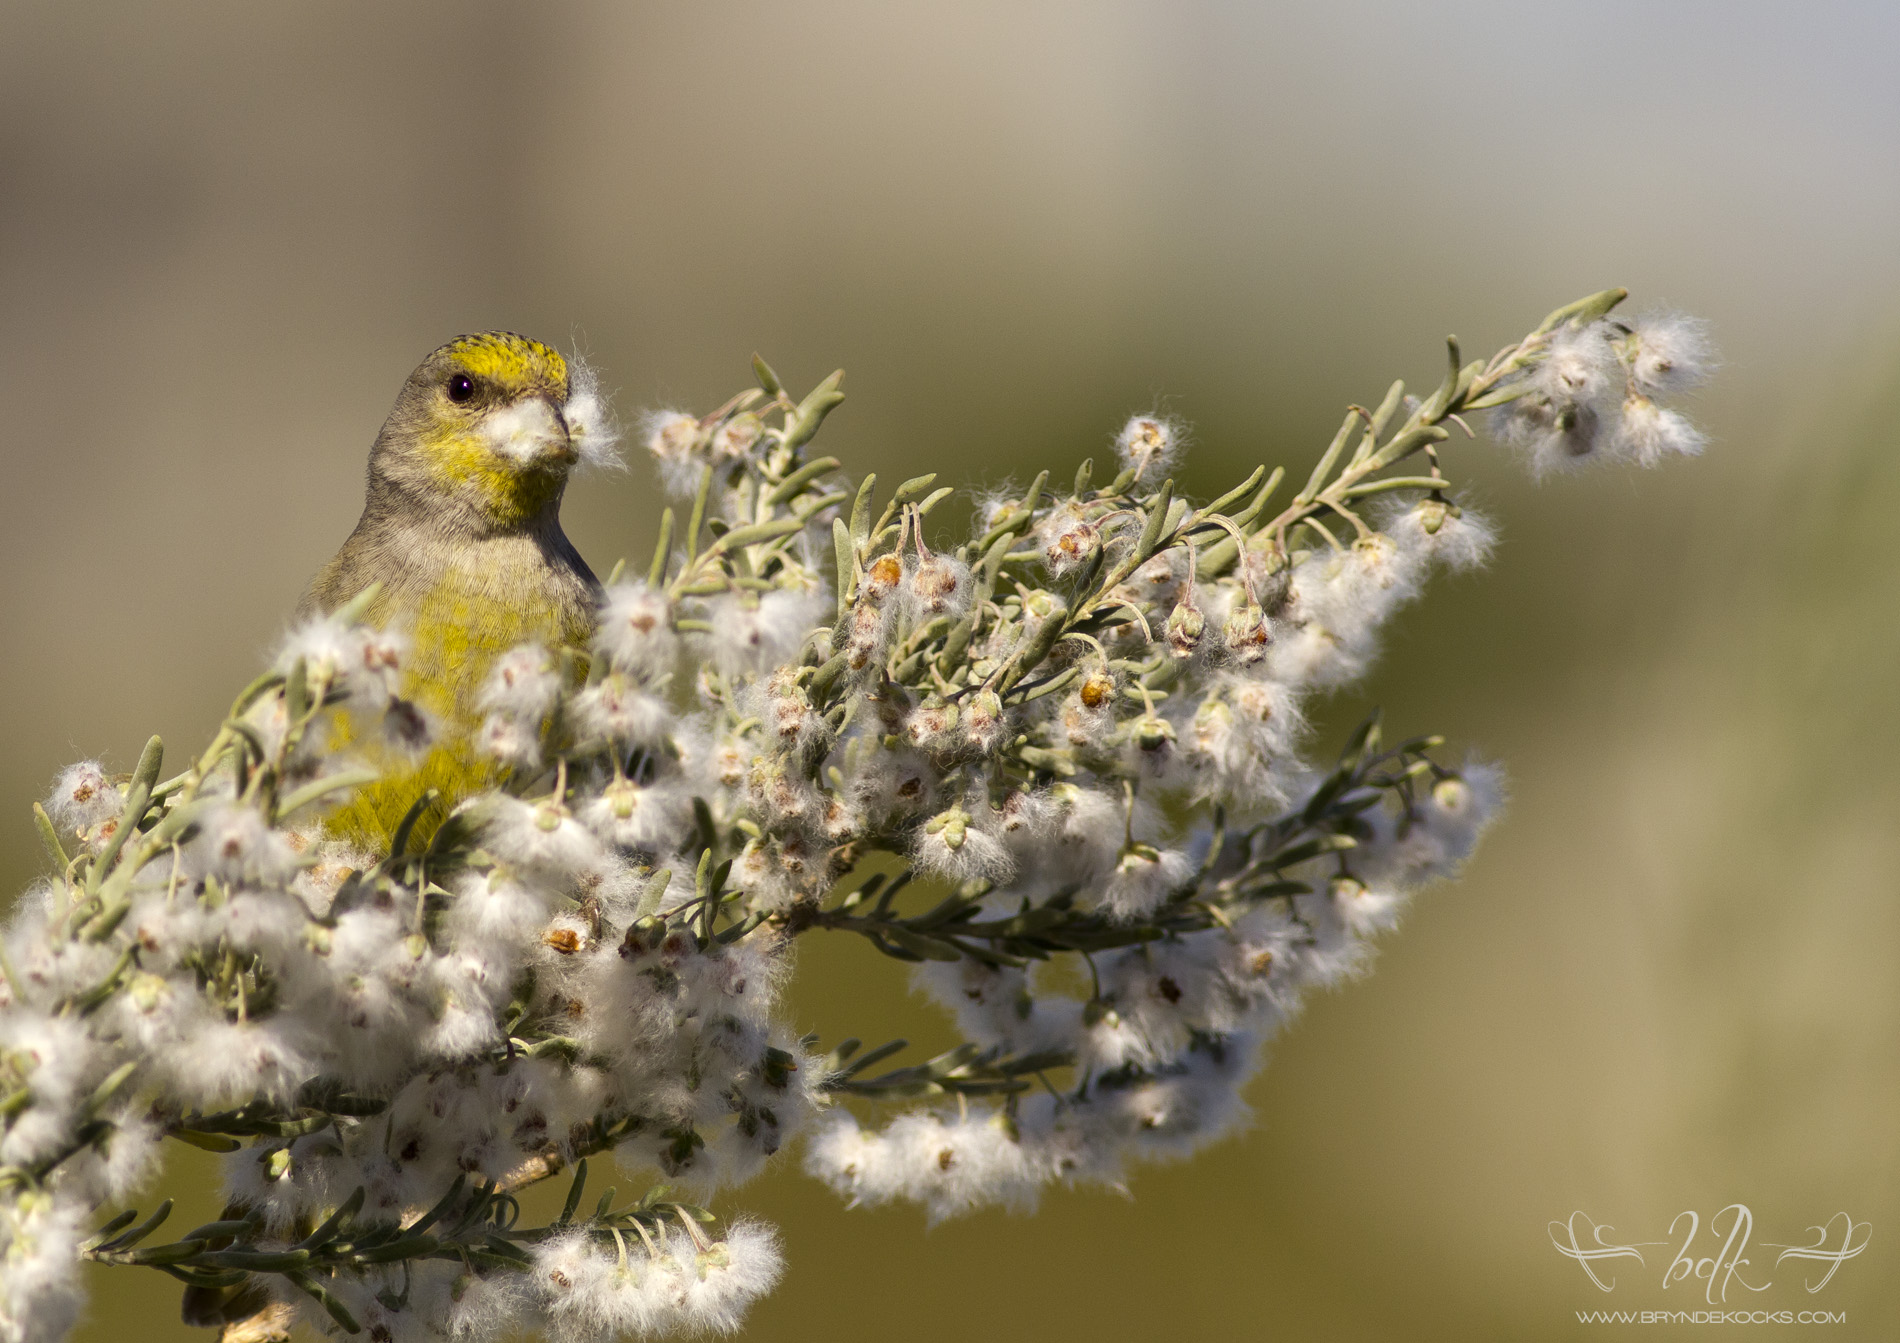 Cape Canary With Nesting Material At Intaka